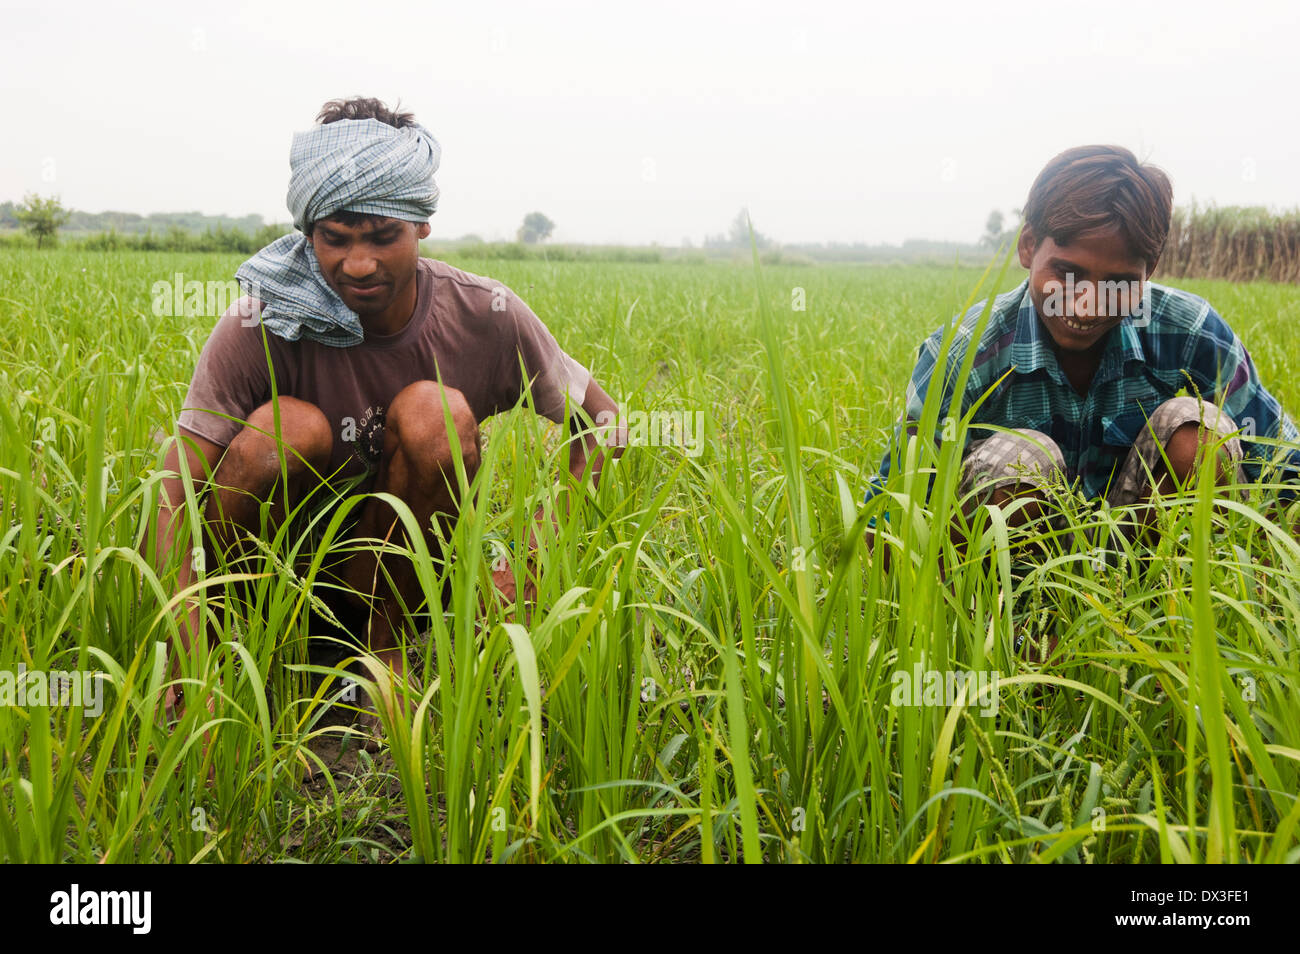 Indian Farmer Working In Farm Stock Photo, Royalty Free ...